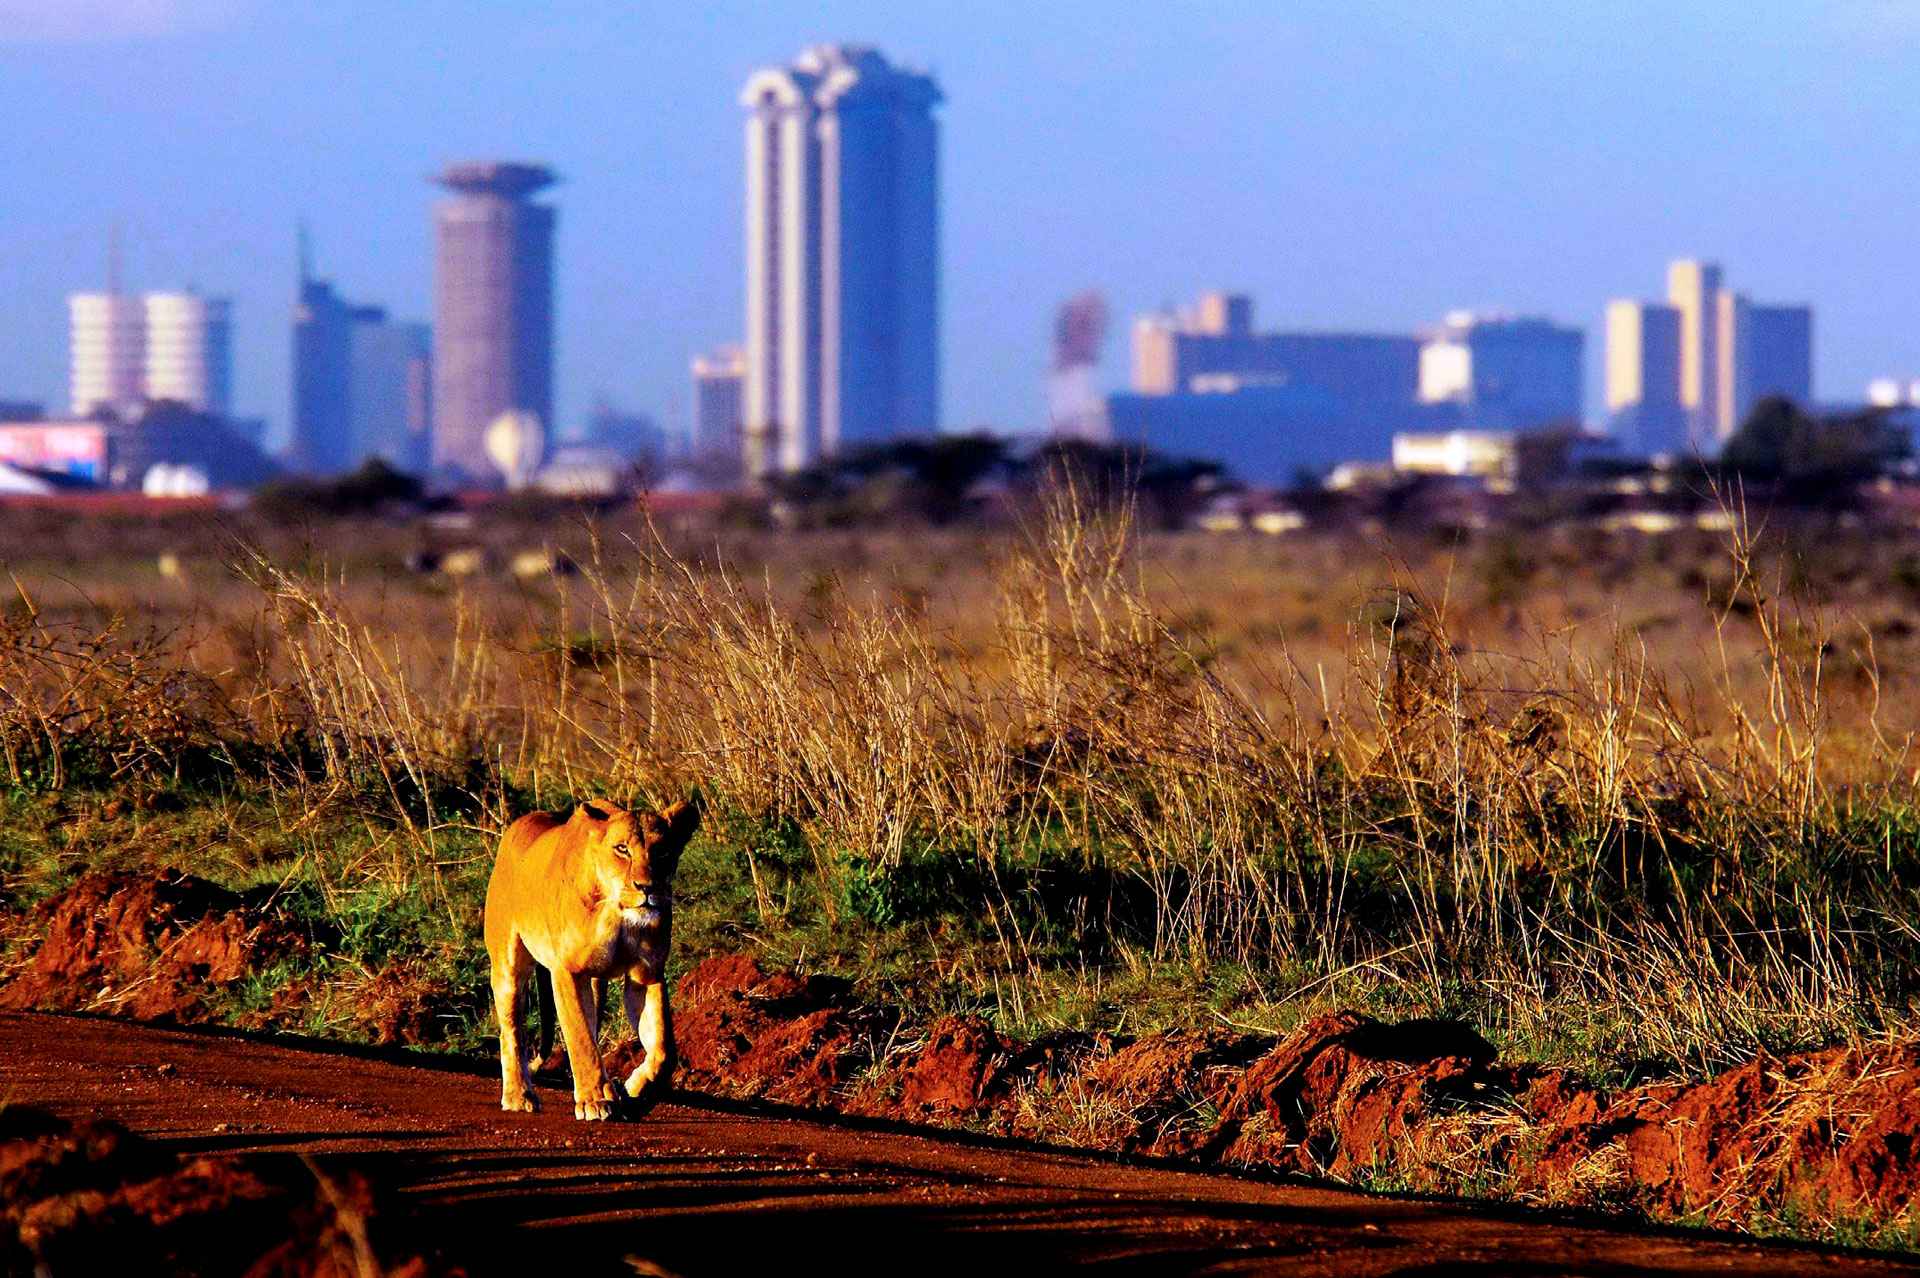 Diani_travel_center_National_Parks_in_Kenya_Nairobi_National_park_image_5jpg